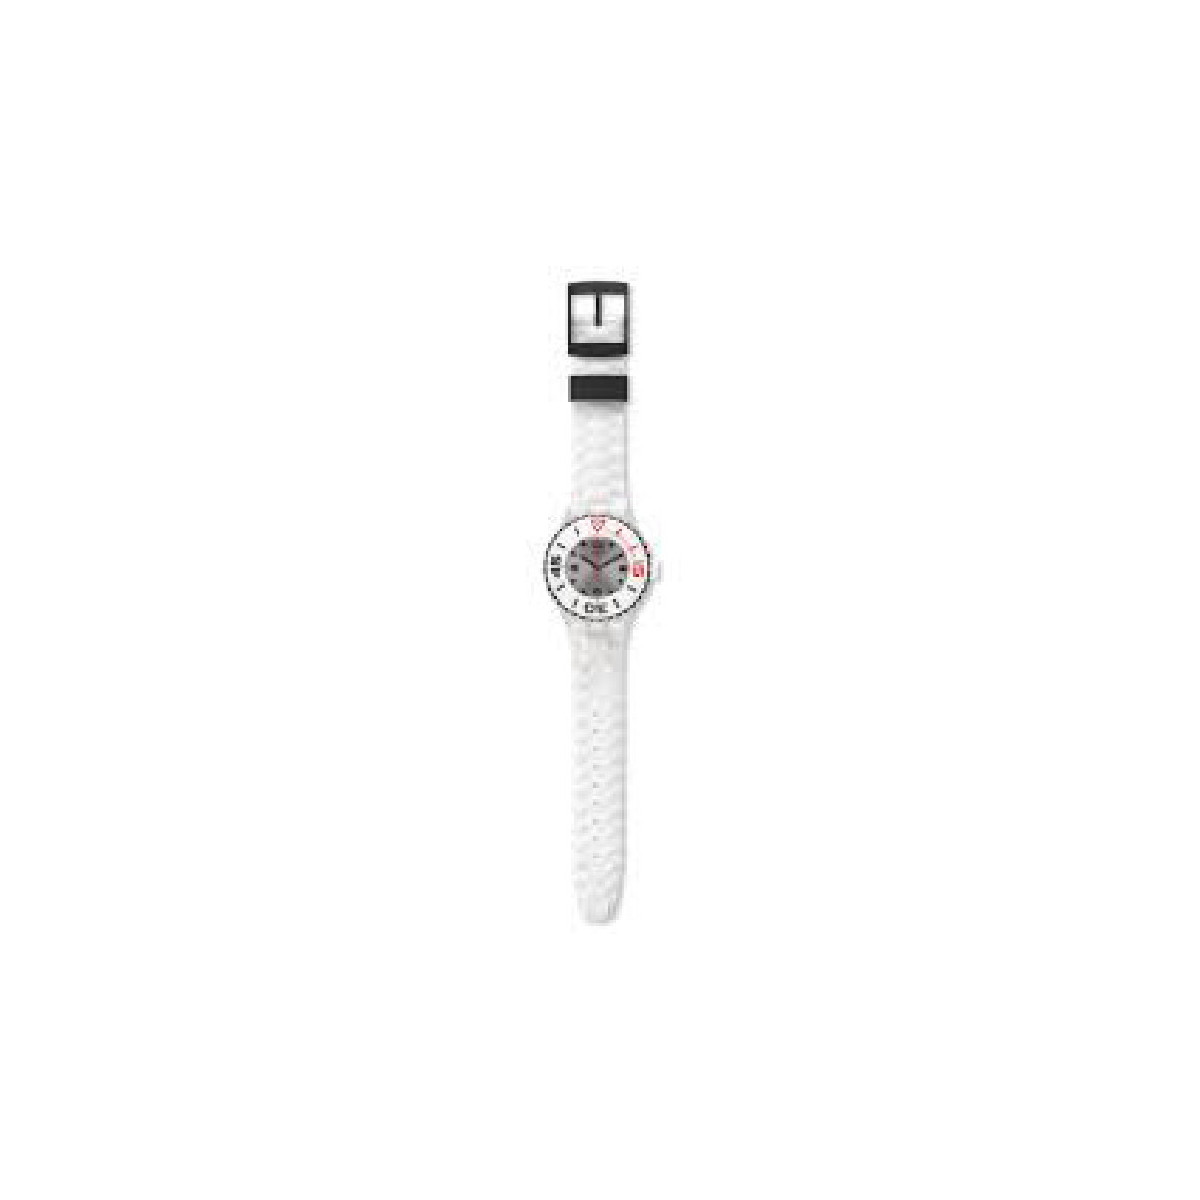 Swatch_SUUK_Blanca_outlet_50%